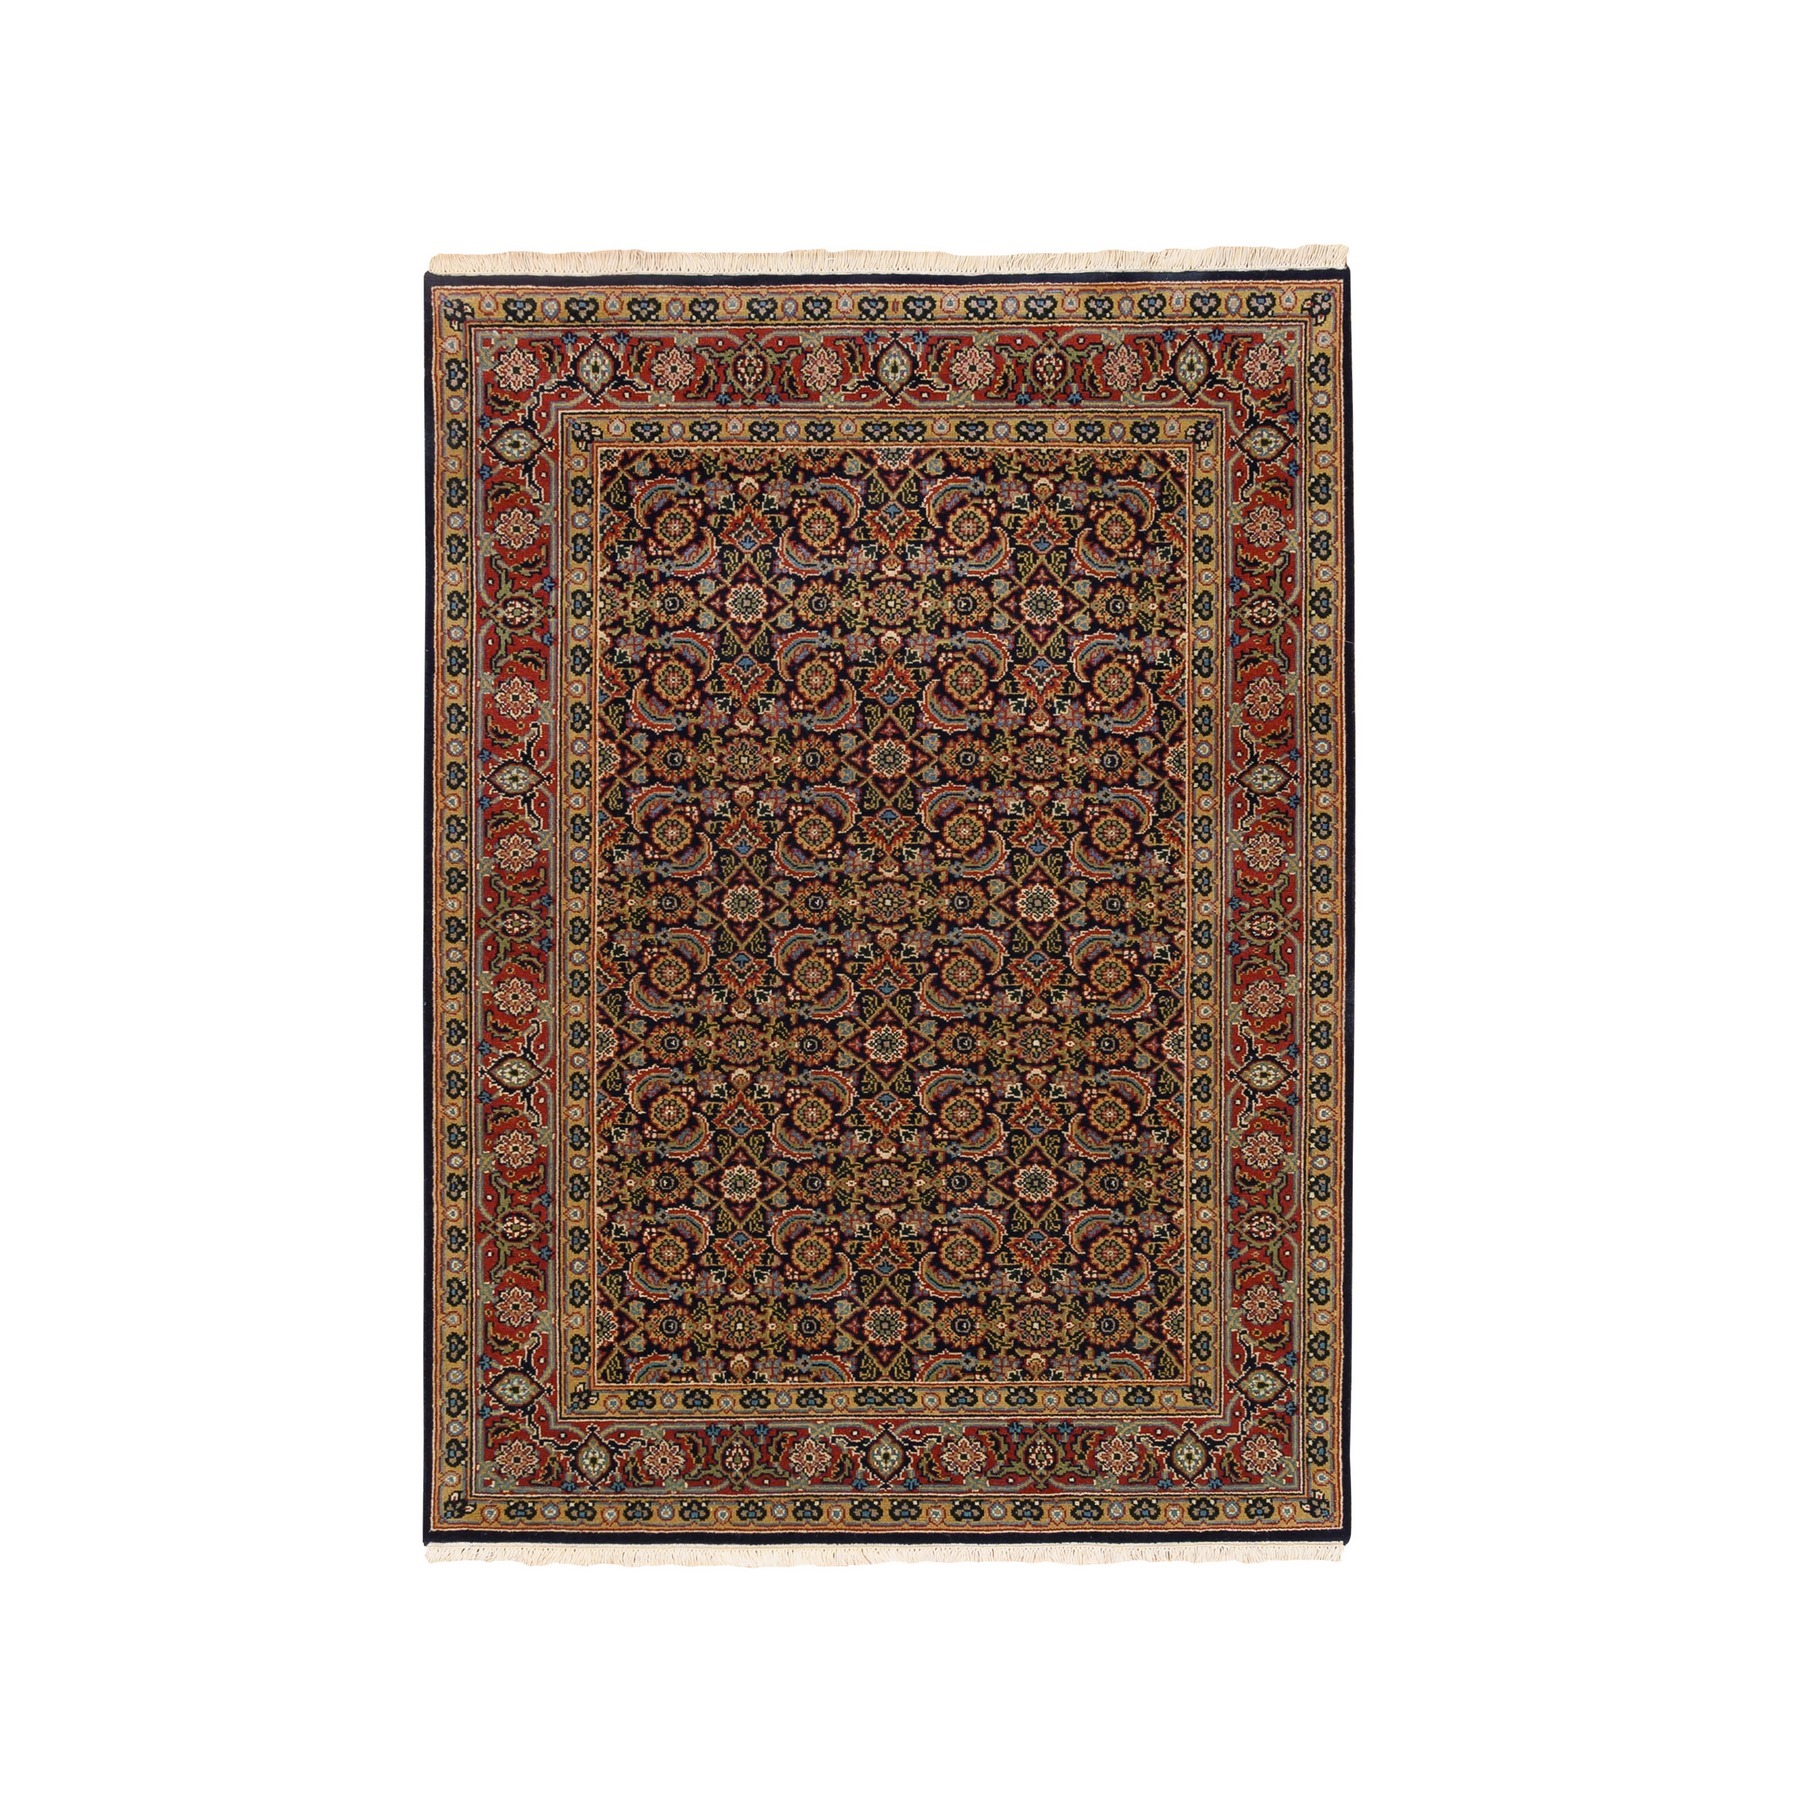 Pirniakan Collection Hand Knotted Blue Rug No: 1124692